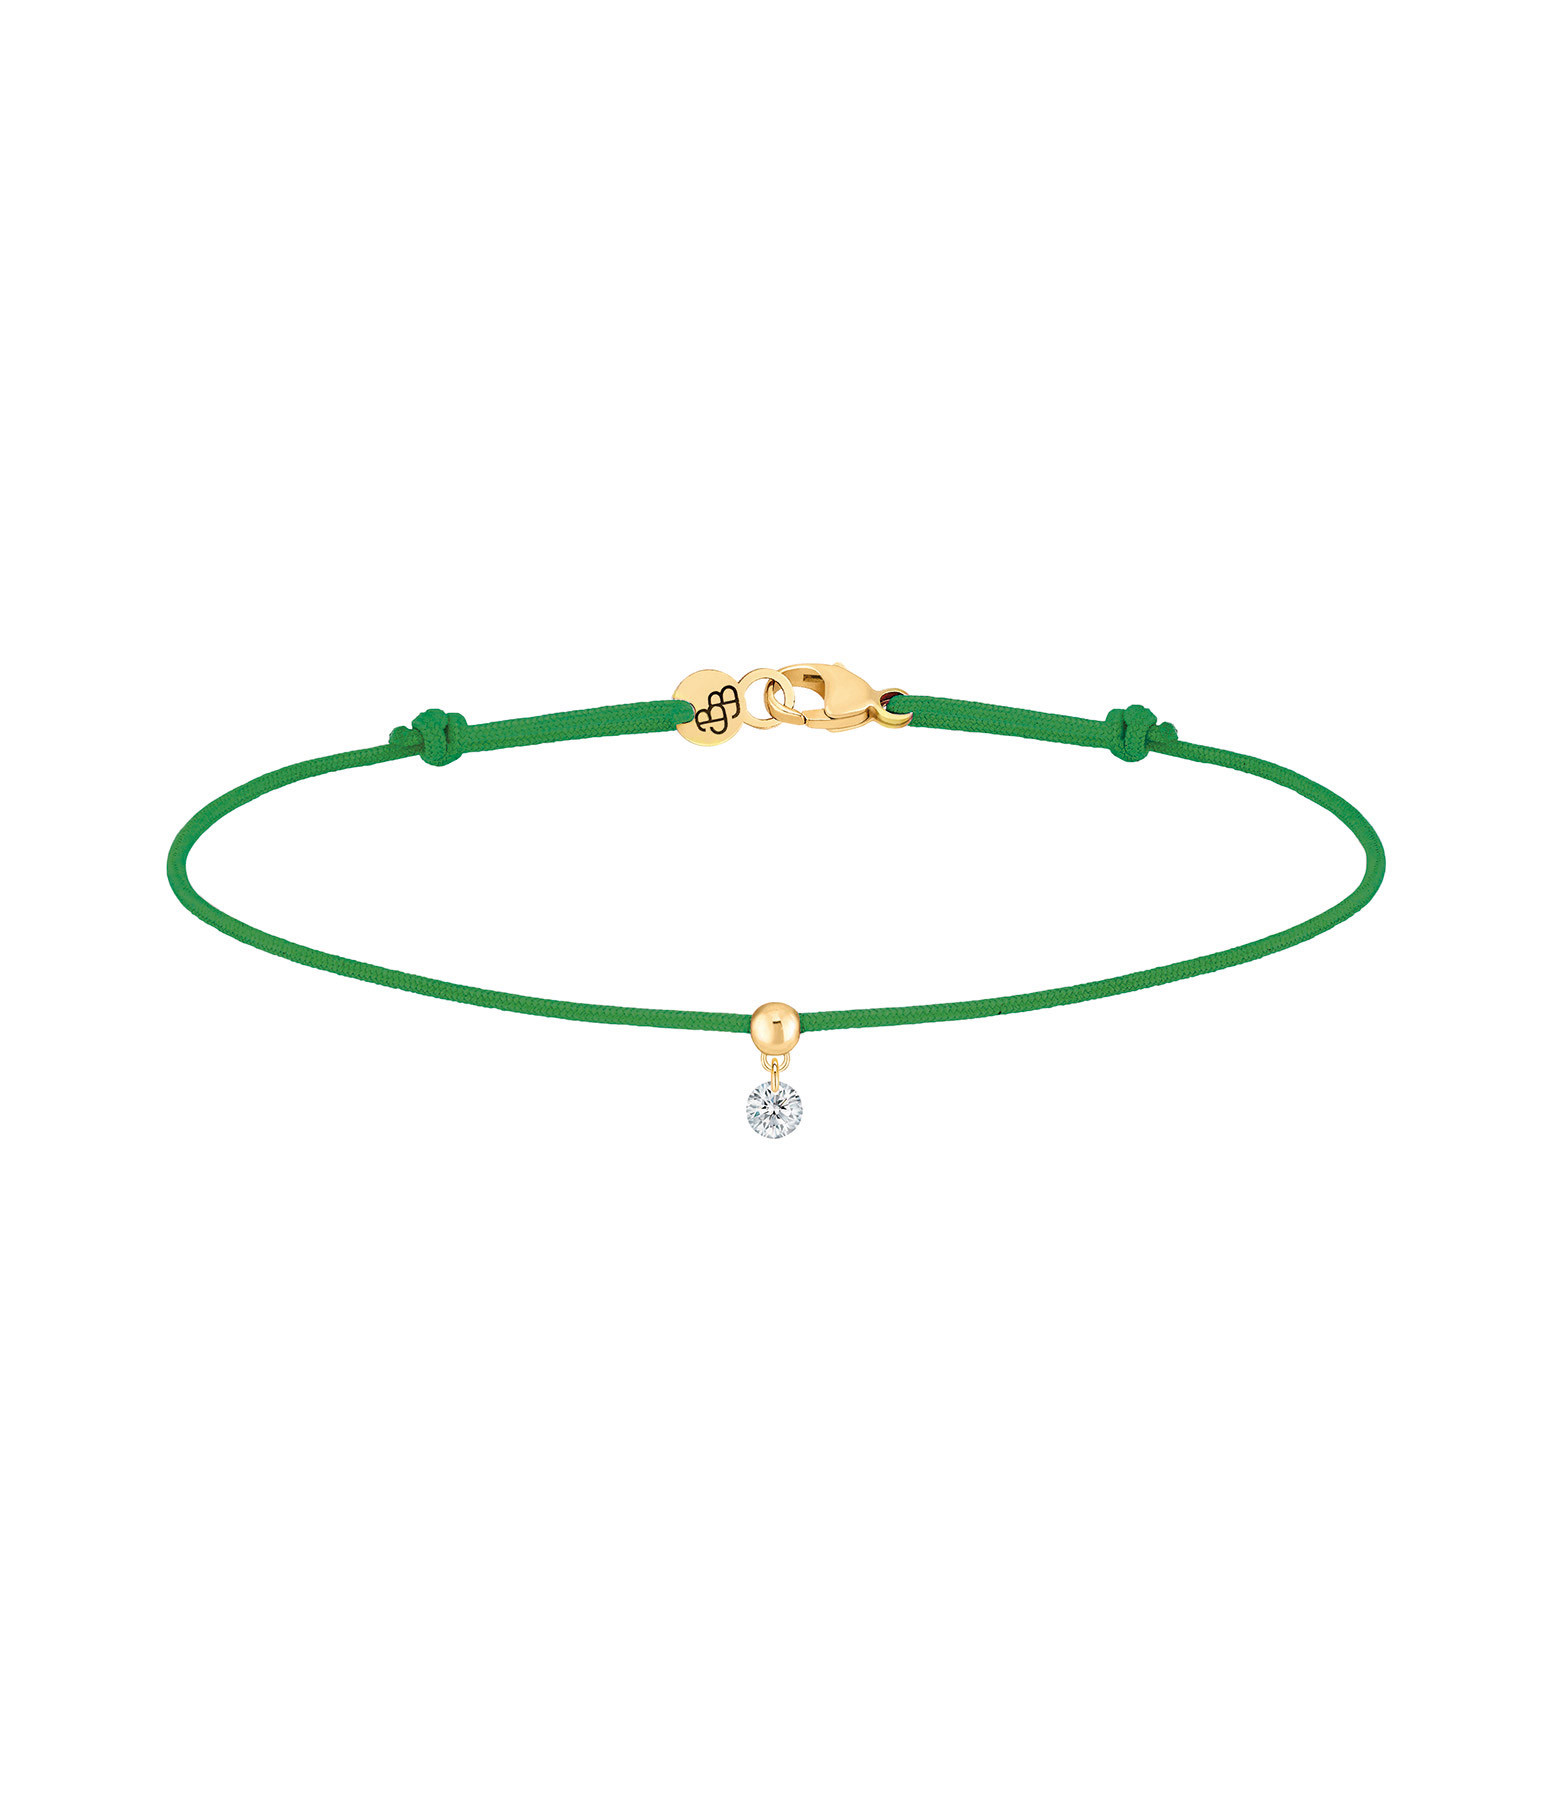 LA BRUNE & LA BLONDE - Bracelet BB Diamant Brillant Cordon Vert Or Jaune